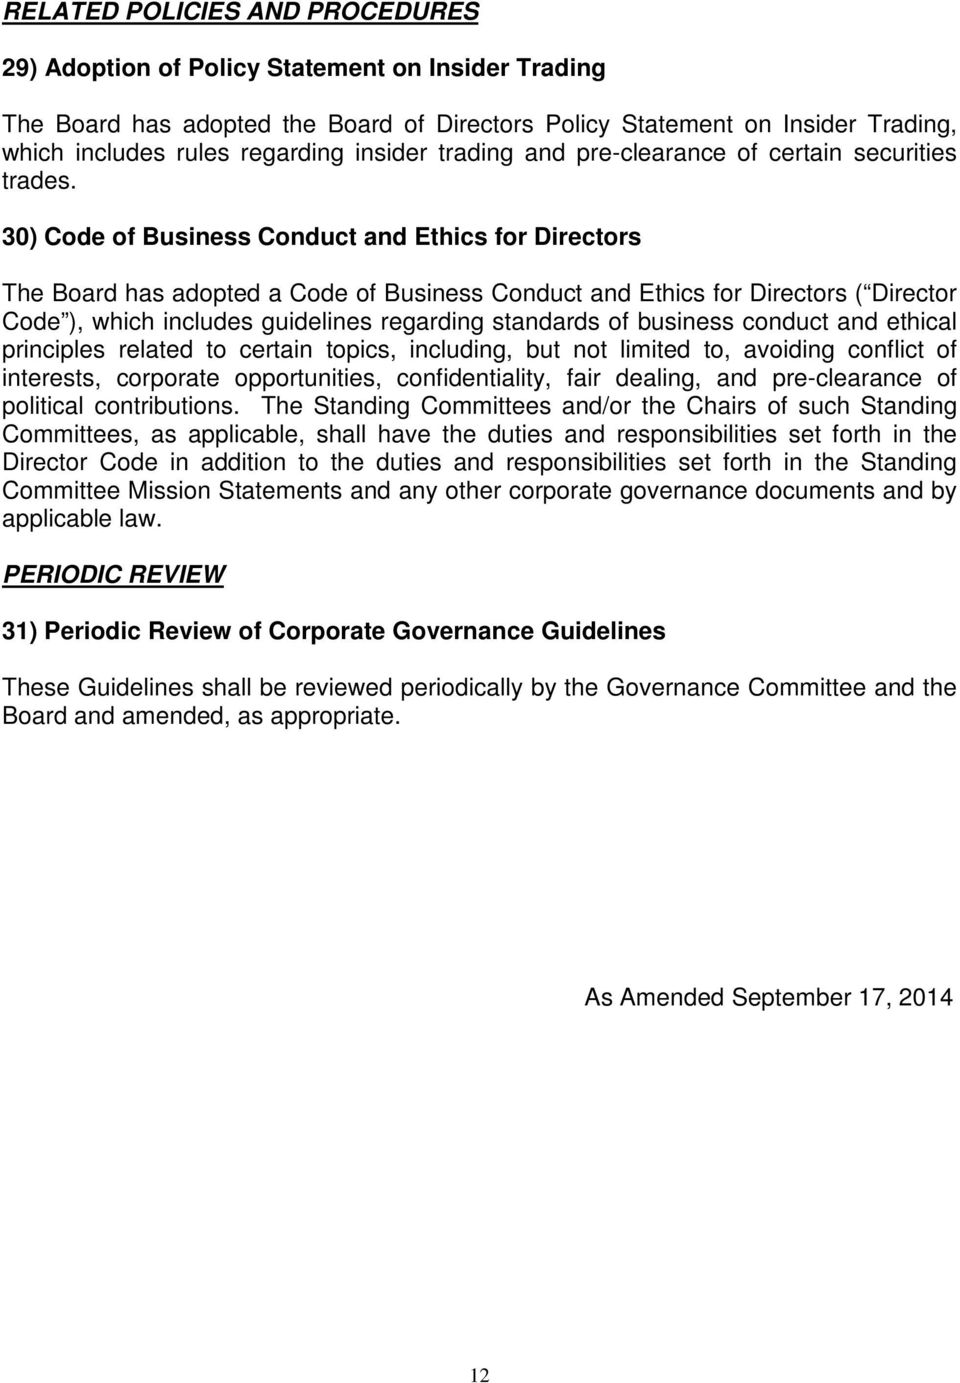 30) Code of Business Conduct and Ethics for Directors The Board has adopted a Code of Business Conduct and Ethics for Directors ( Director Code ), which includes guidelines regarding standards of